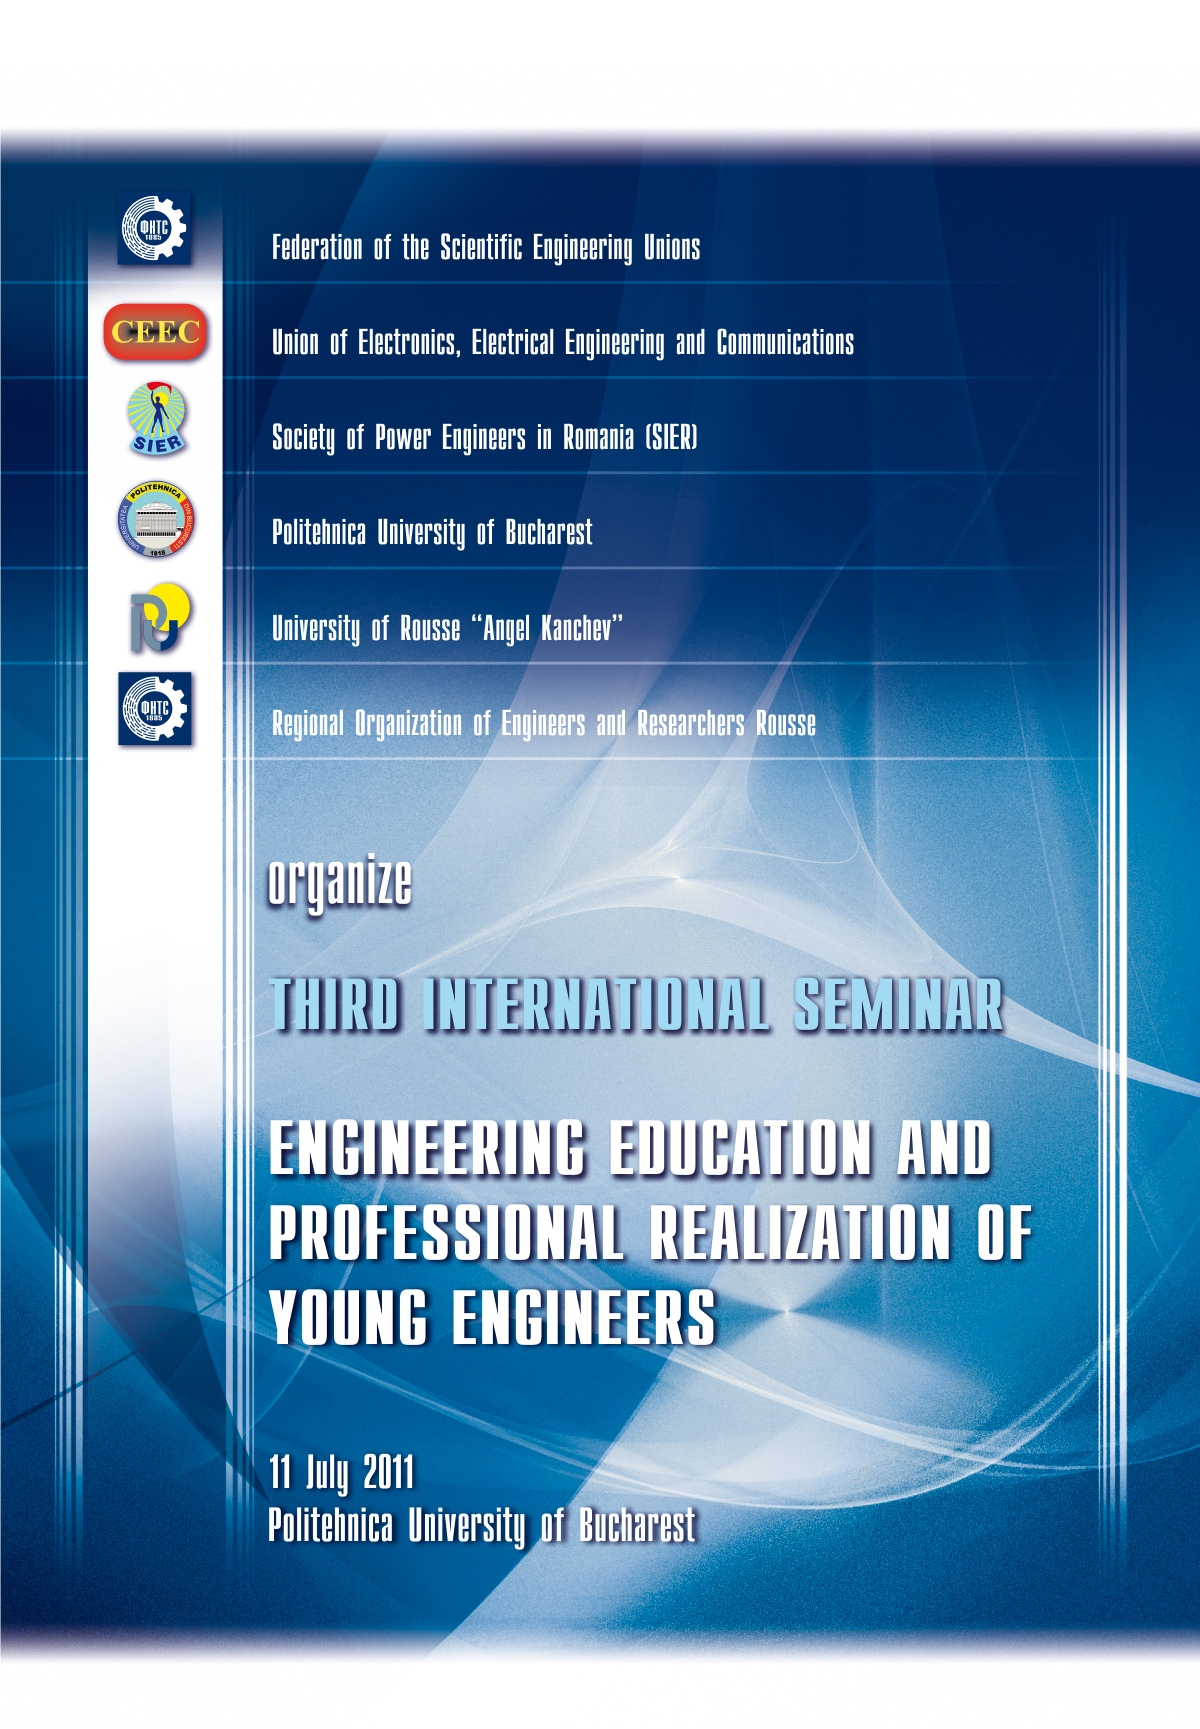 3rd International Seminar - Engineering education and professional realization of young engineers